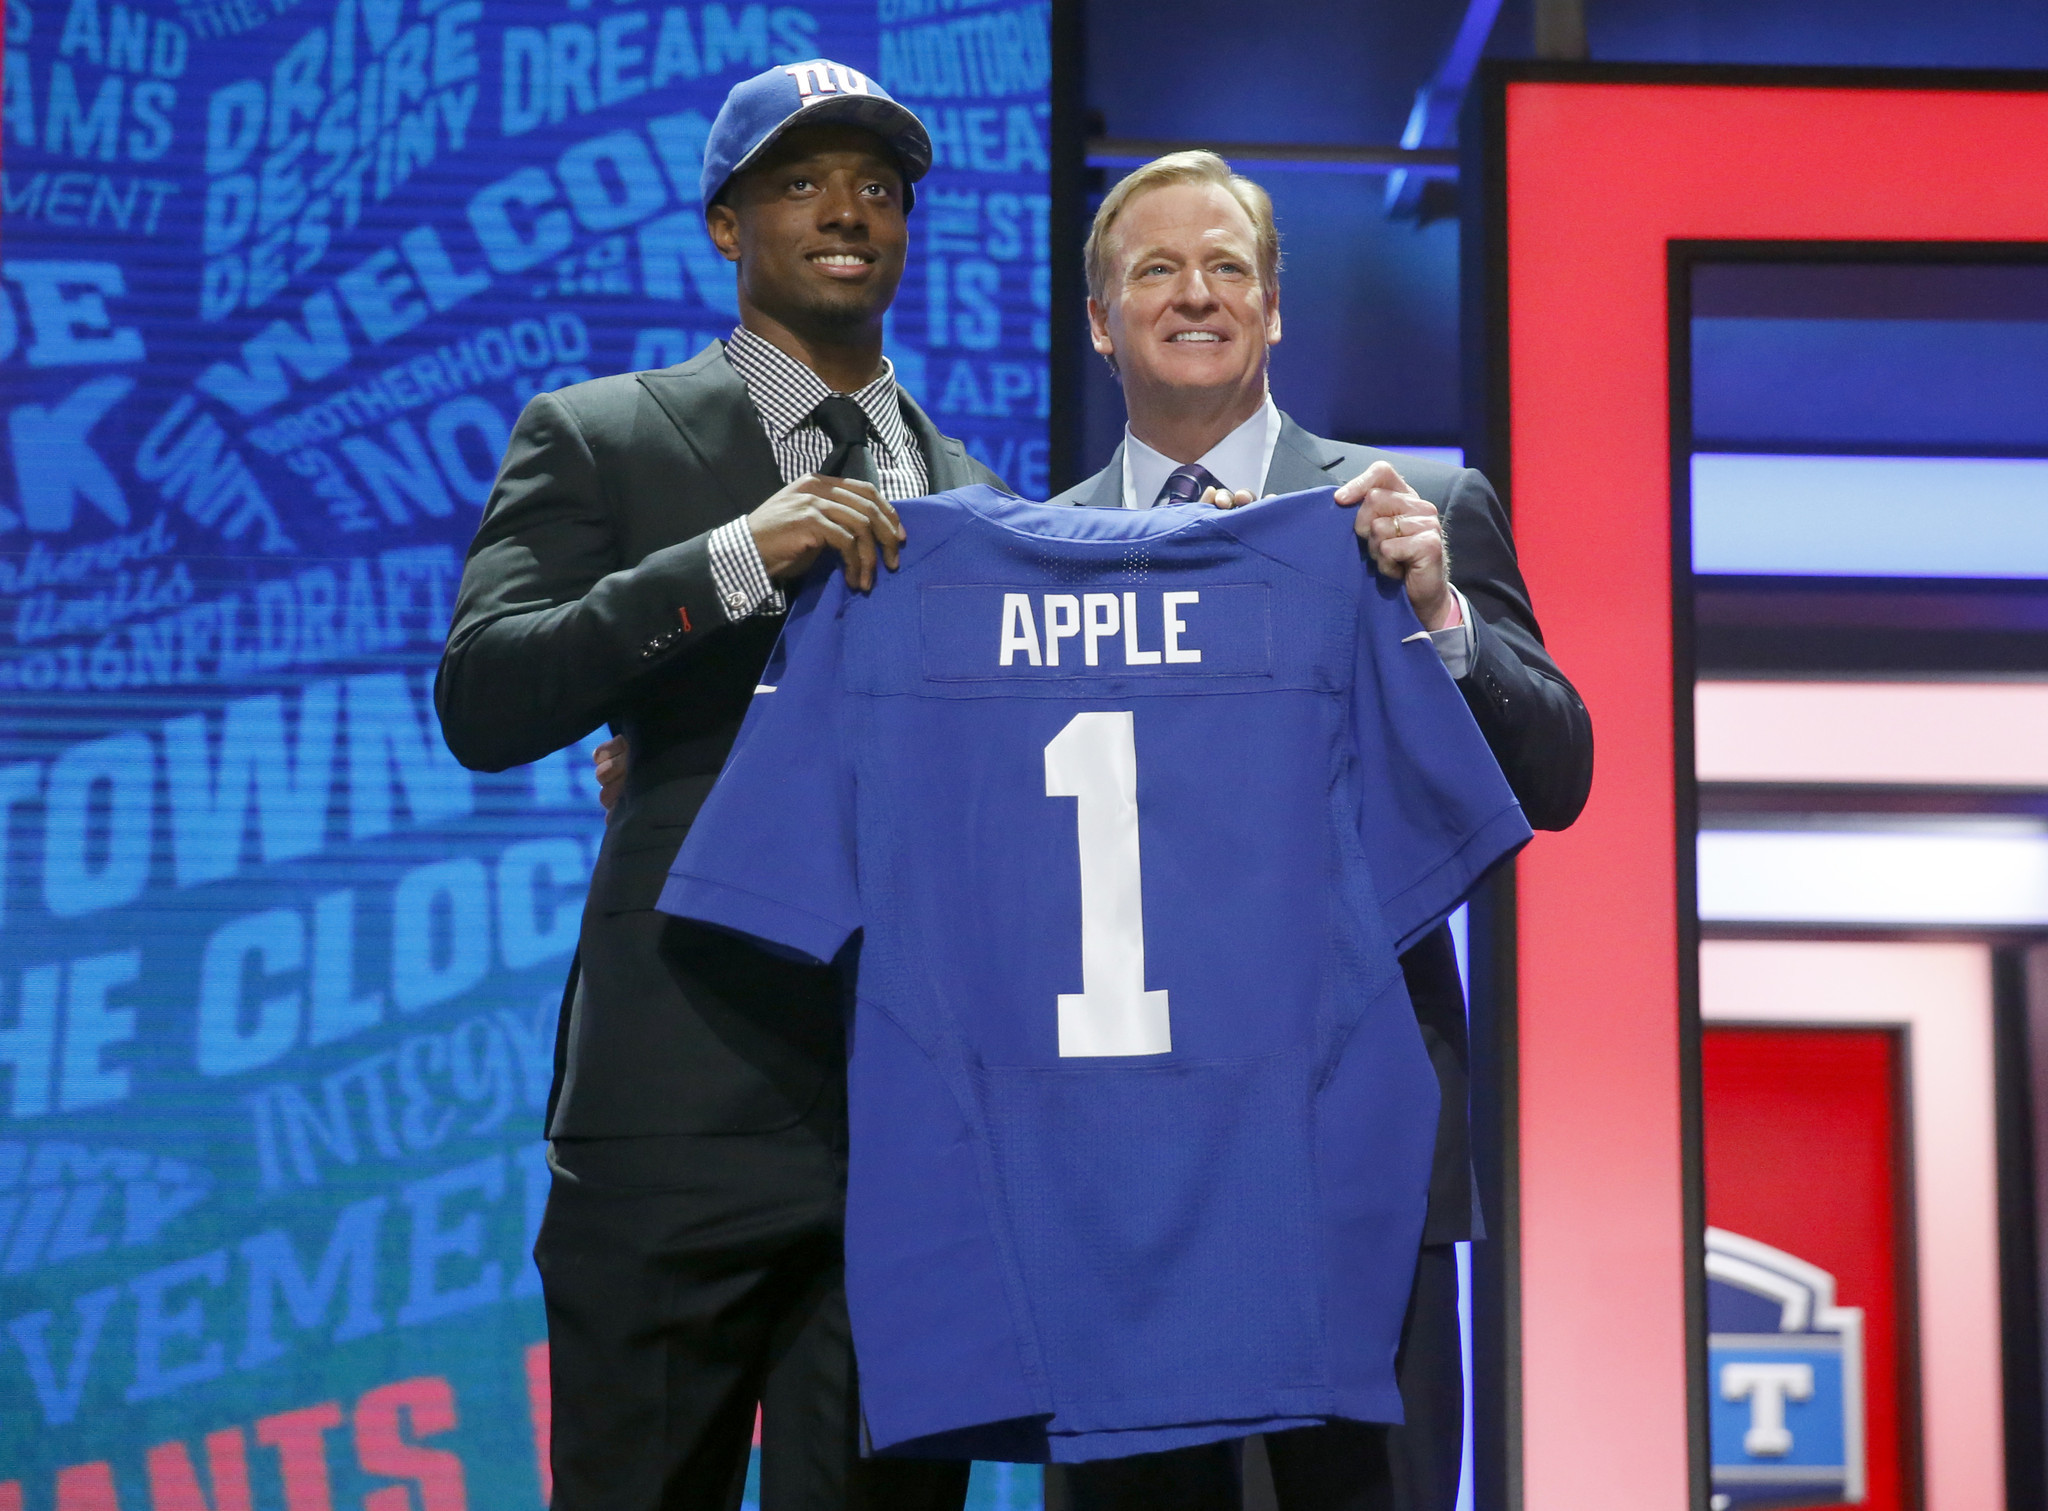 Giants Draft Ohio State s Apple With 10th Overall Pick - Hartford Courant 489fe6bc5